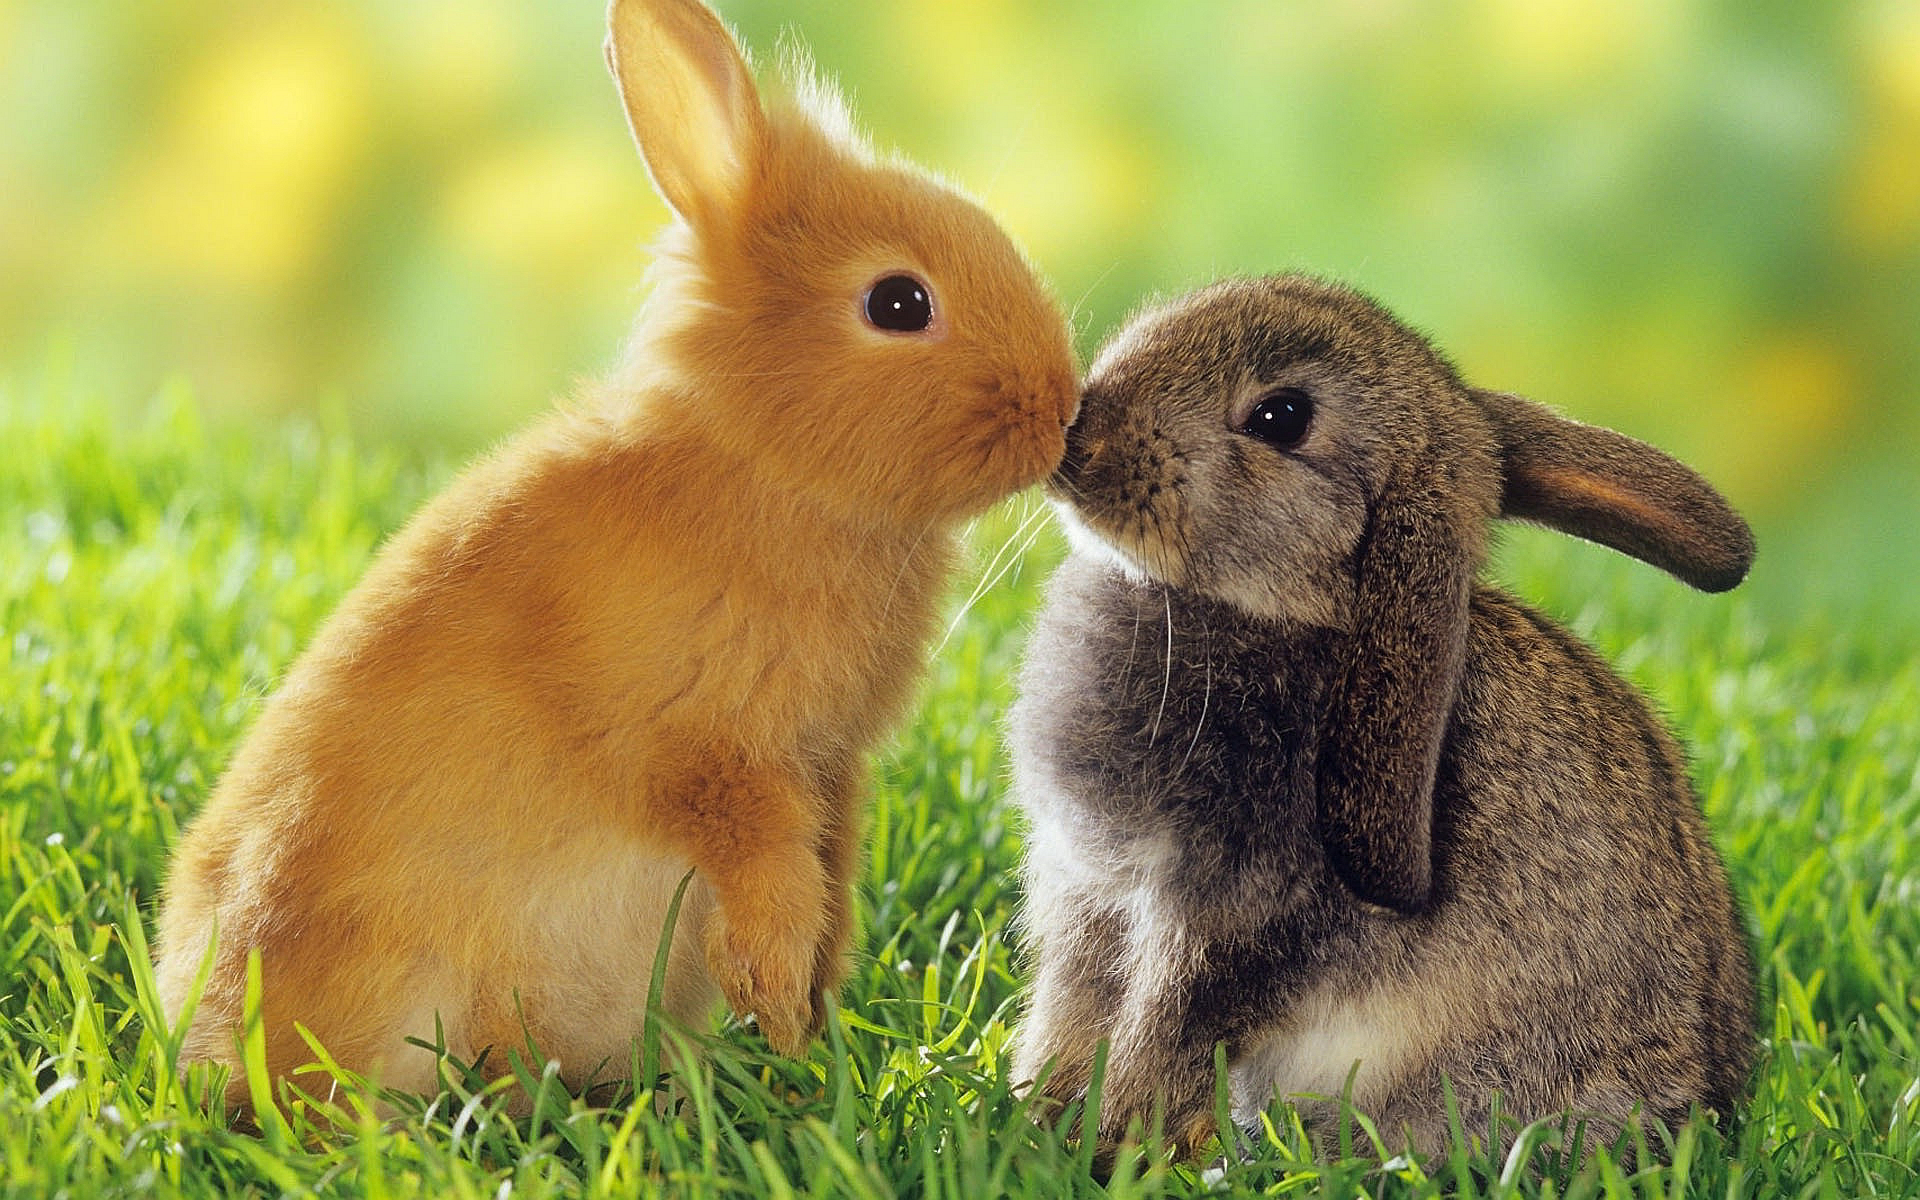 ที่มา: Credit Pic : wallpaperu.com/wp-content/uploads/2015/03/rabbit_kissing_wallpaper.jpg